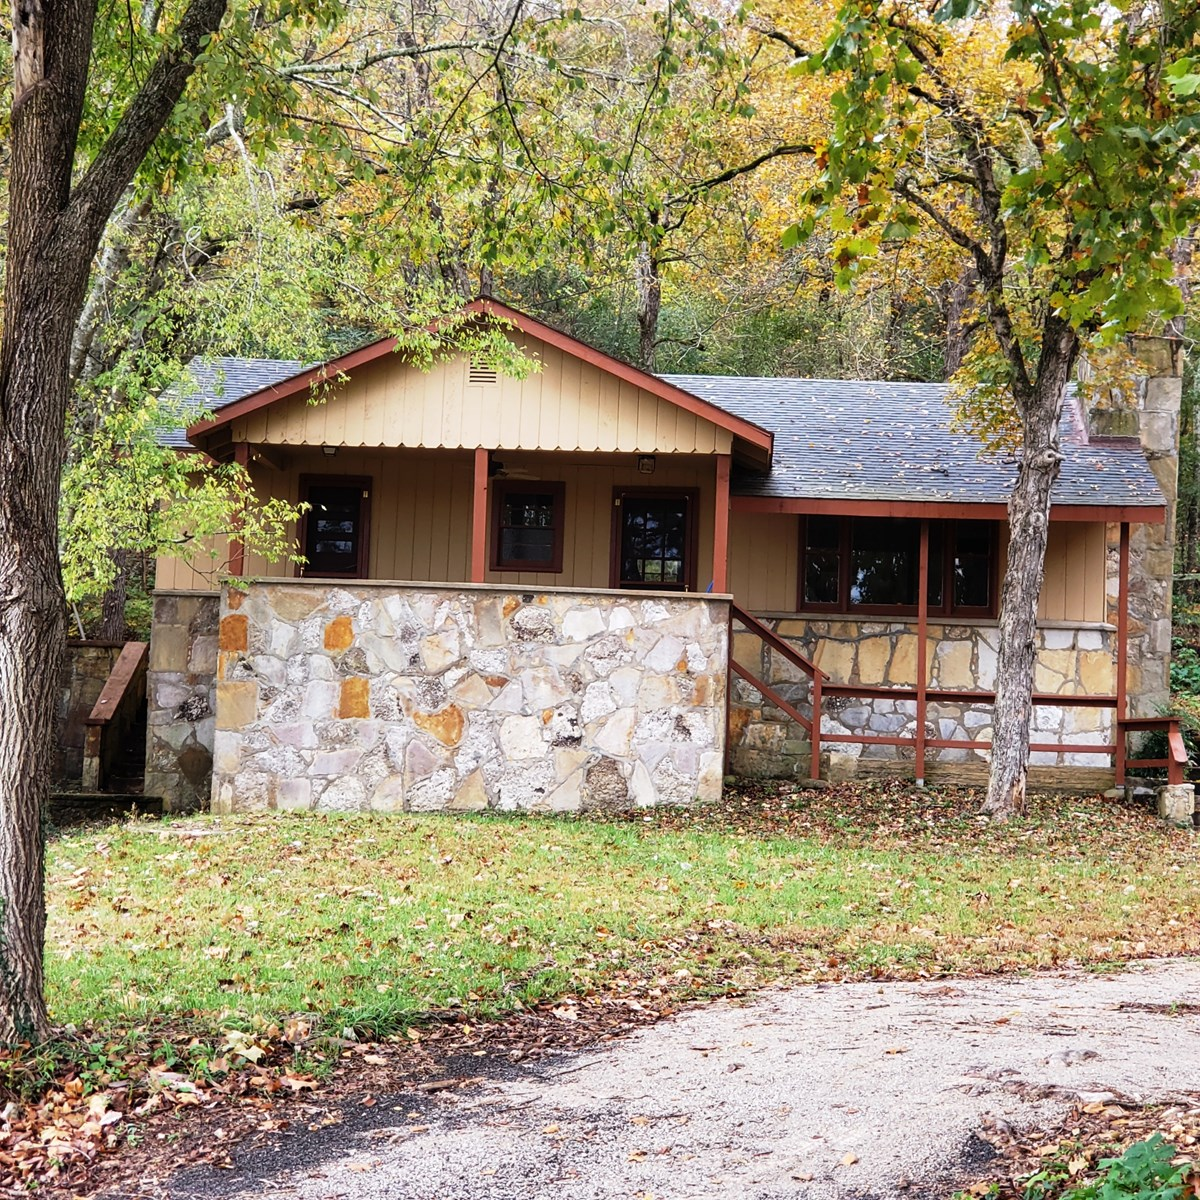 Quaint Cottage across from Spring River for sale in AR